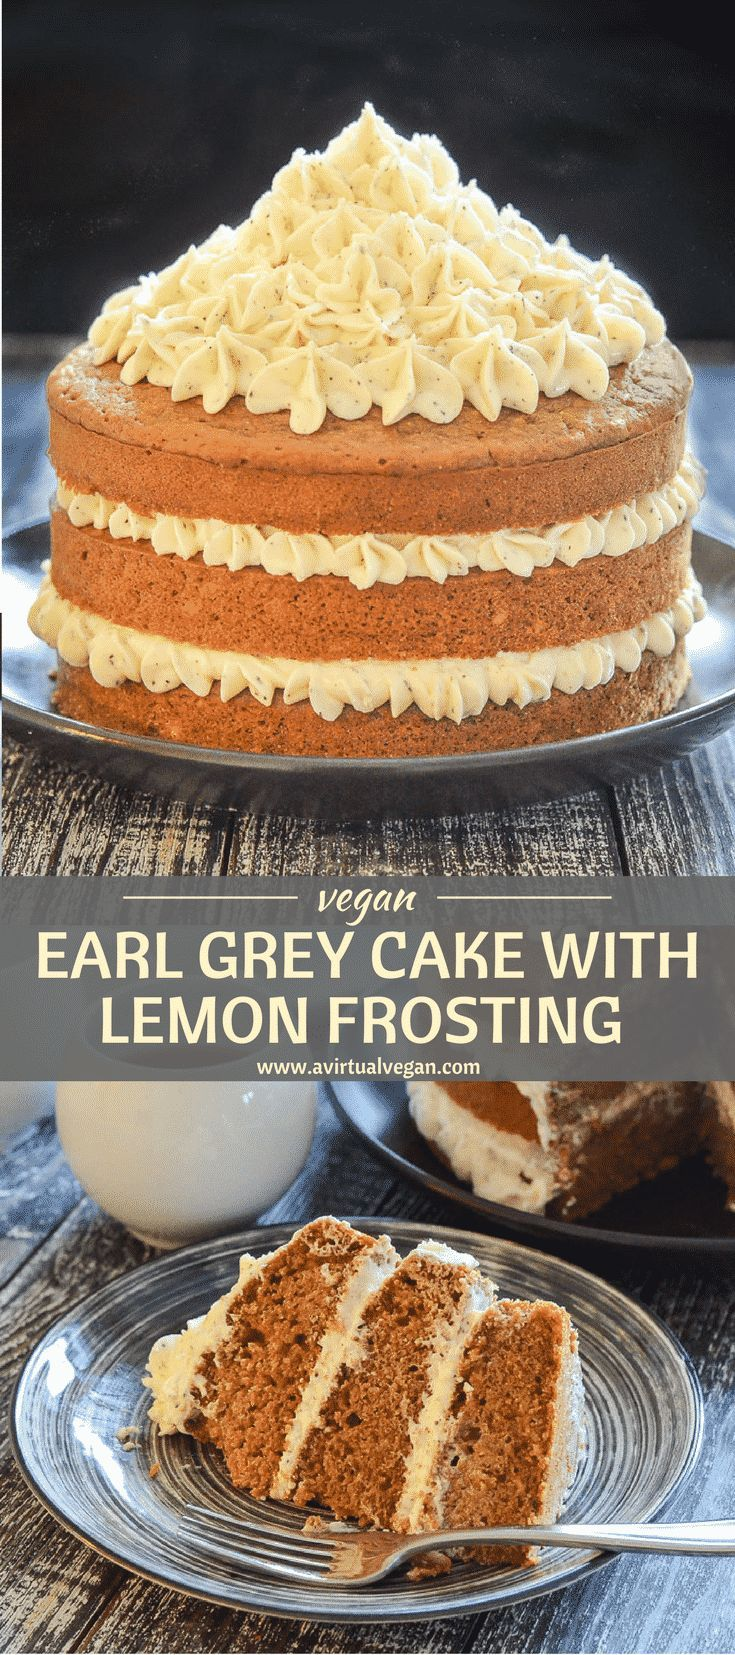 An exceptional yet simple layered Vegan Cake with subtle Earl Grey fragrance & fluffy, buttery, lemony frosting. It can be made as a 3 layer cake, a 2 layer cake or even 6 muffins. You will find full instructions for all 3! via @avirtualvegan #vegan #vegancake #cake #earlgrey #layercake #sponsored